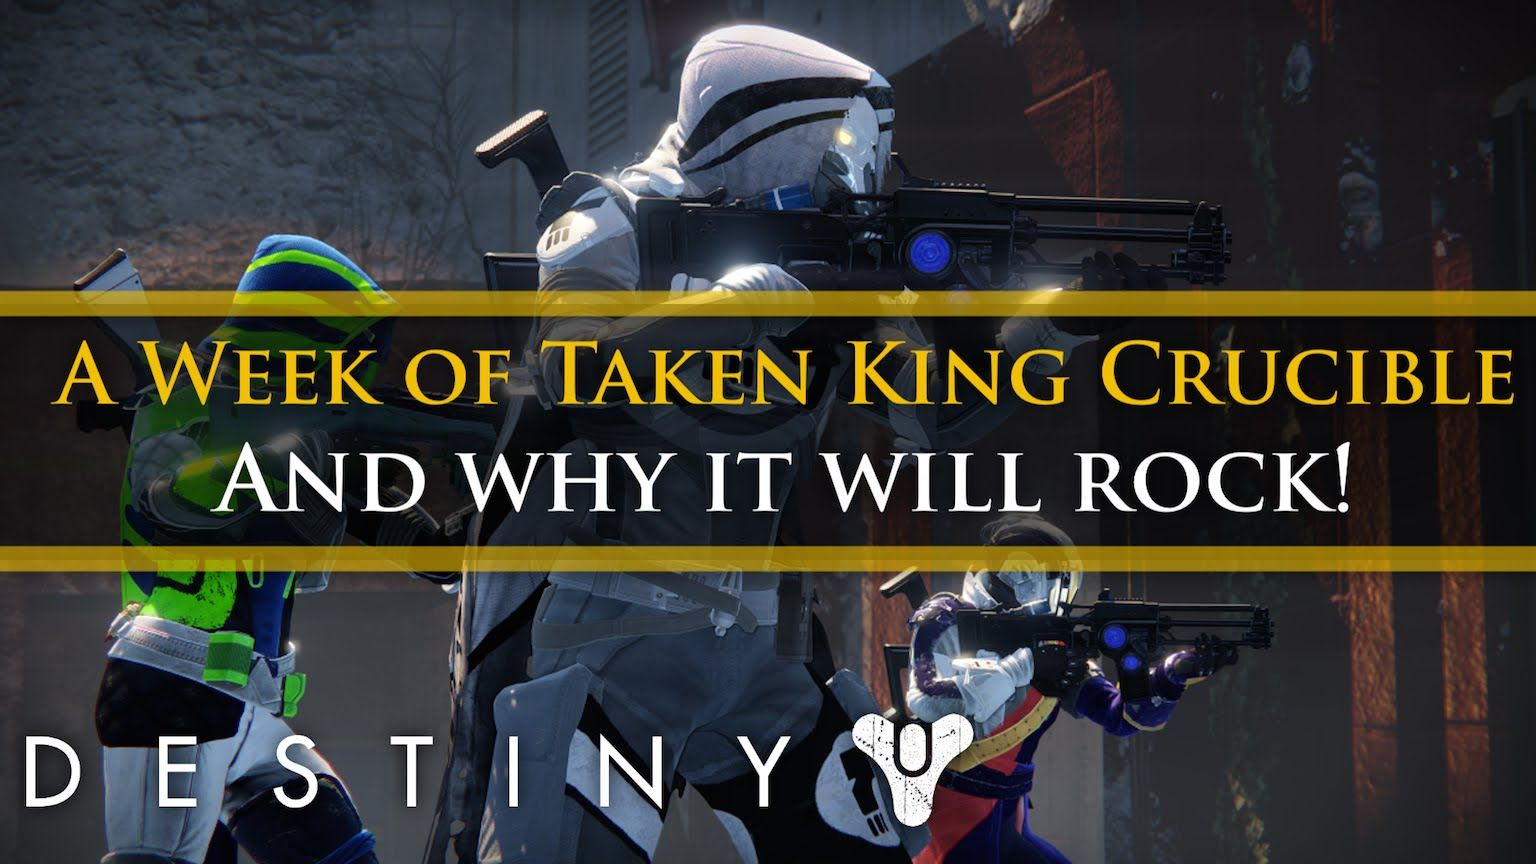 Destiny A week of free Taken King crucible and why it